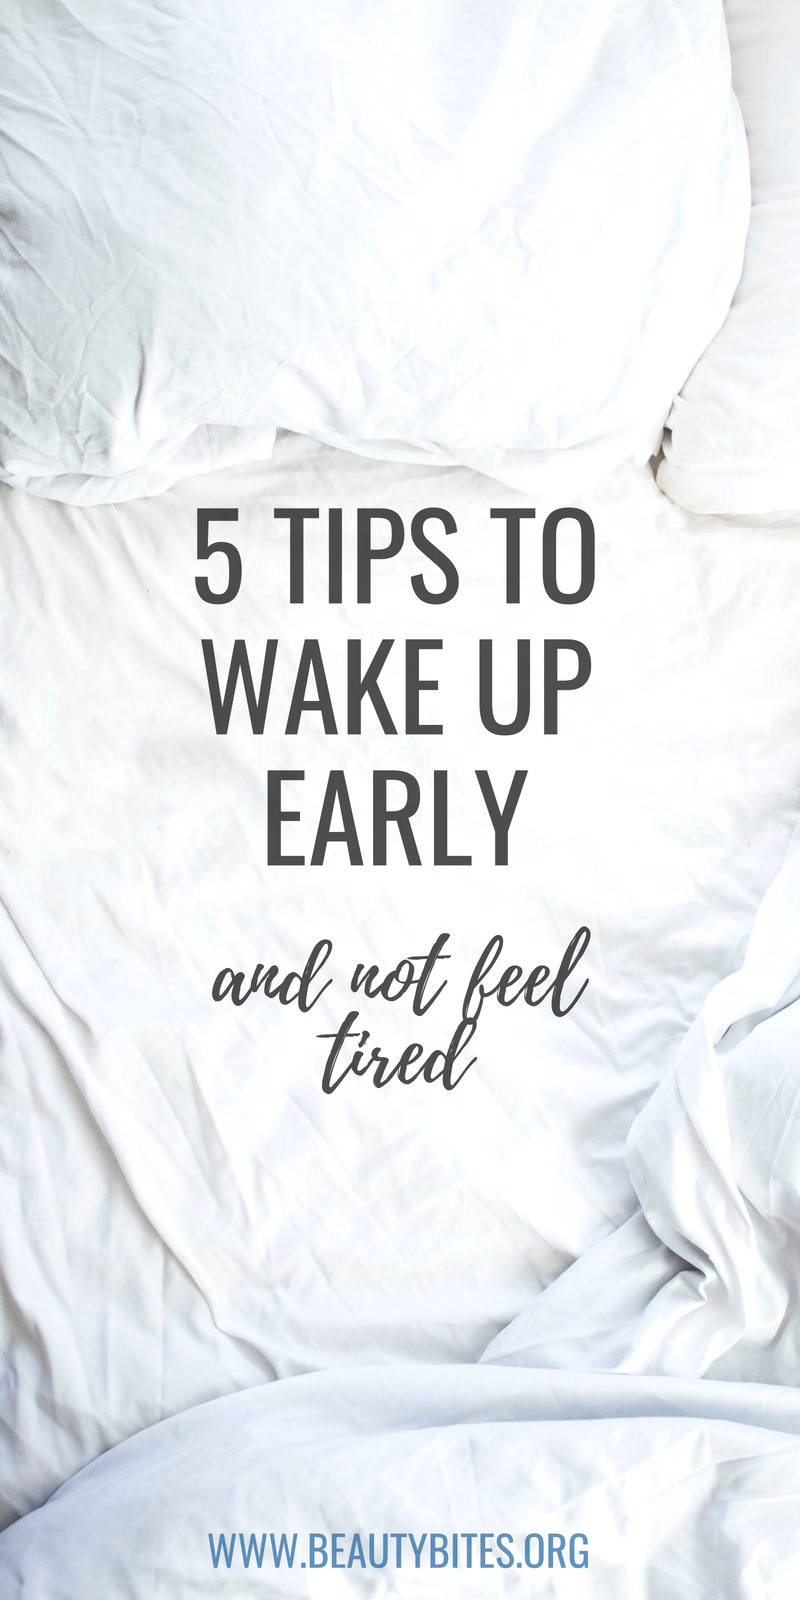 How To Wake Up Early: 5 Tips That Actually Work